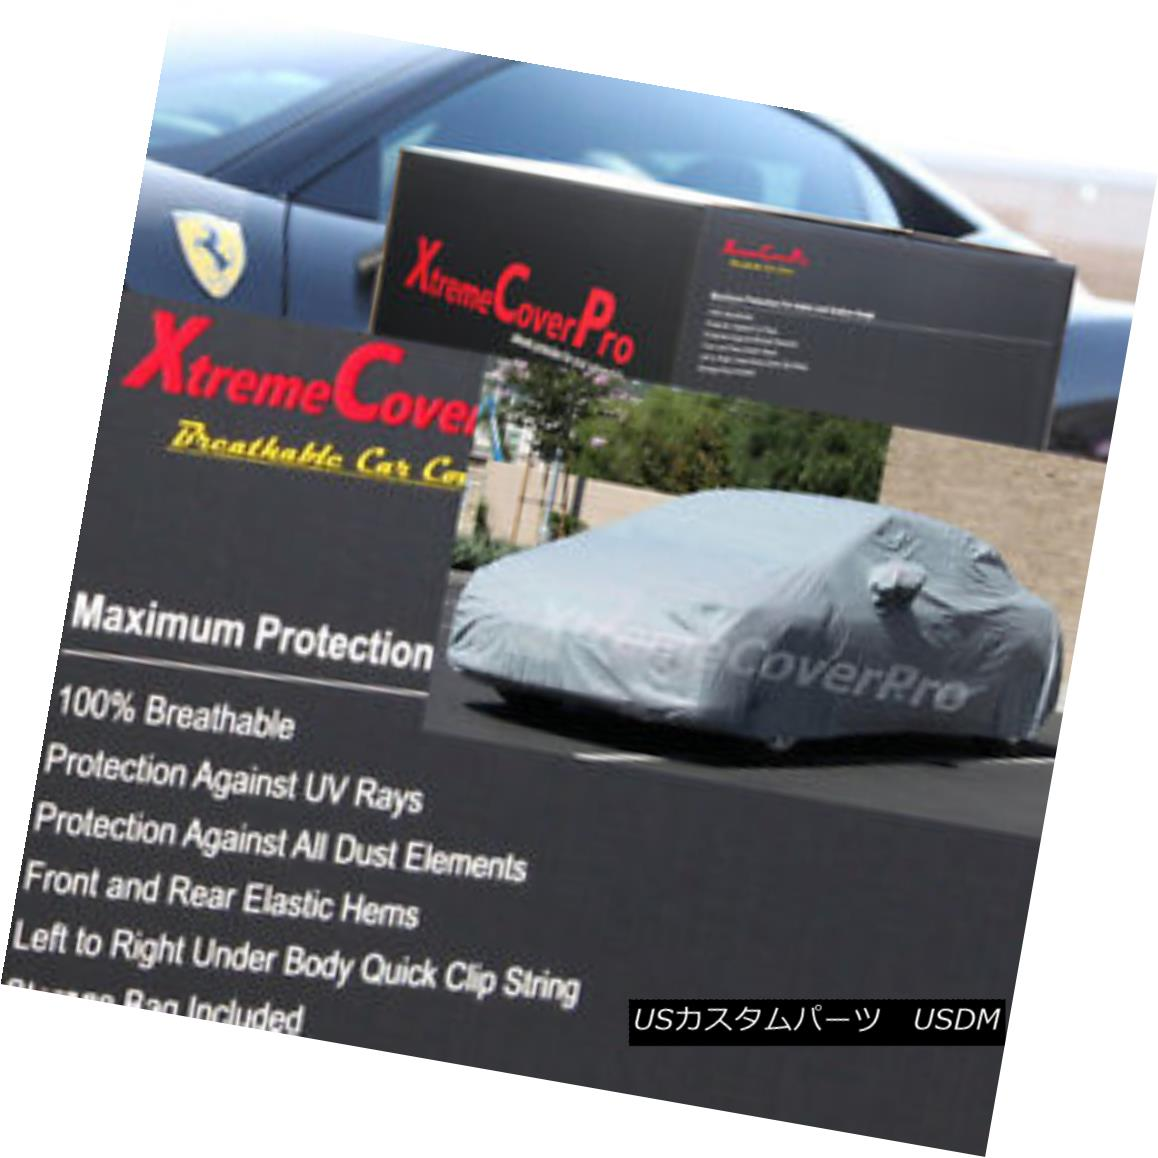 カーカバー 1994 1995 1996 Mercedes C220 C230 C280 Breathable Car Cover w/MirrorPocket 1994年1995年1996年メルセデスC220 C230 C280 MirrorPocket付き通気性車カバー